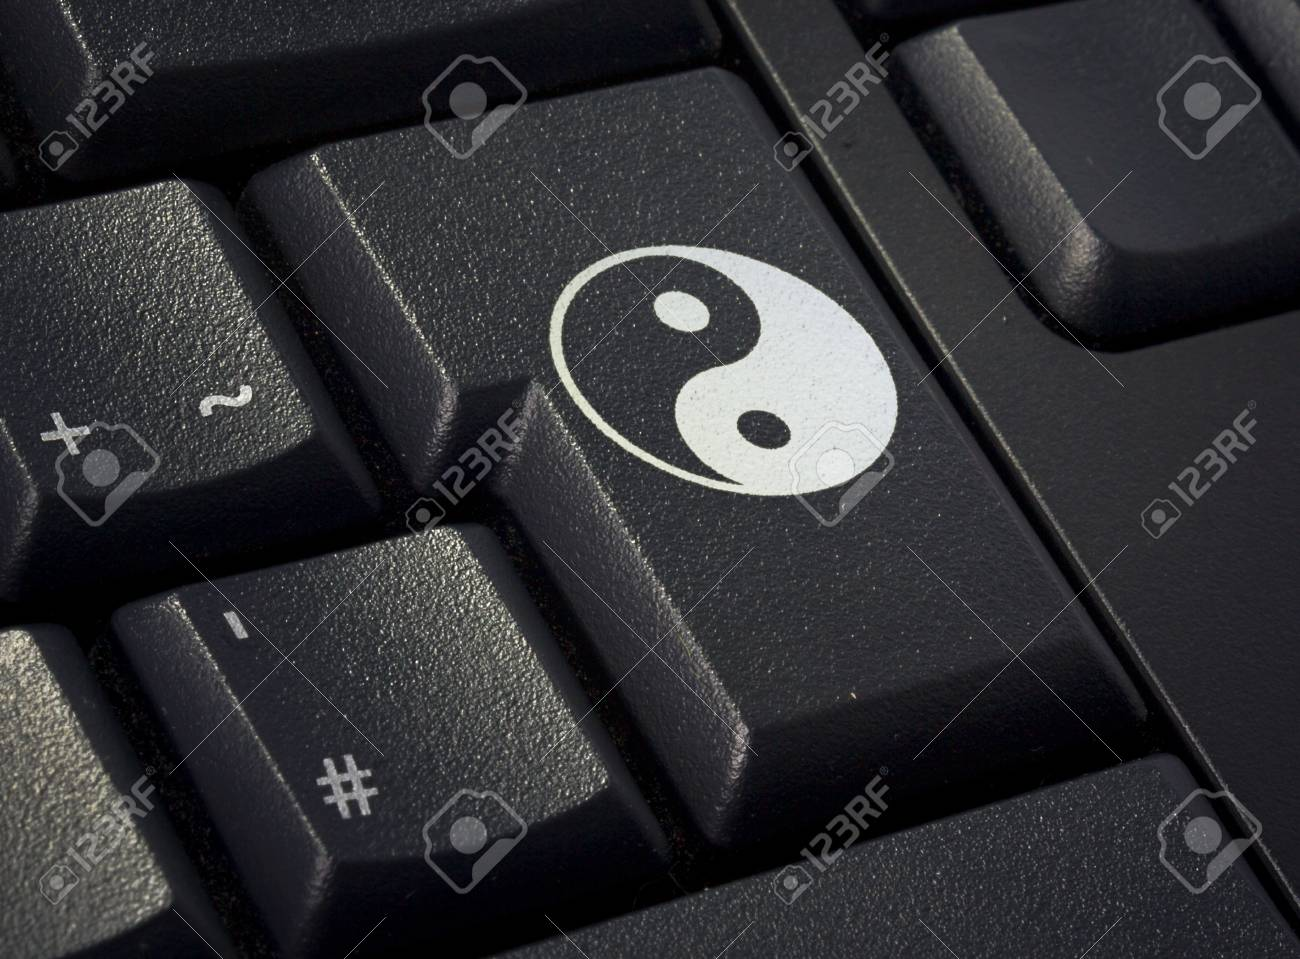 Return Key Of A Black Keyboard With The Shape Of A Ying Yang Stock